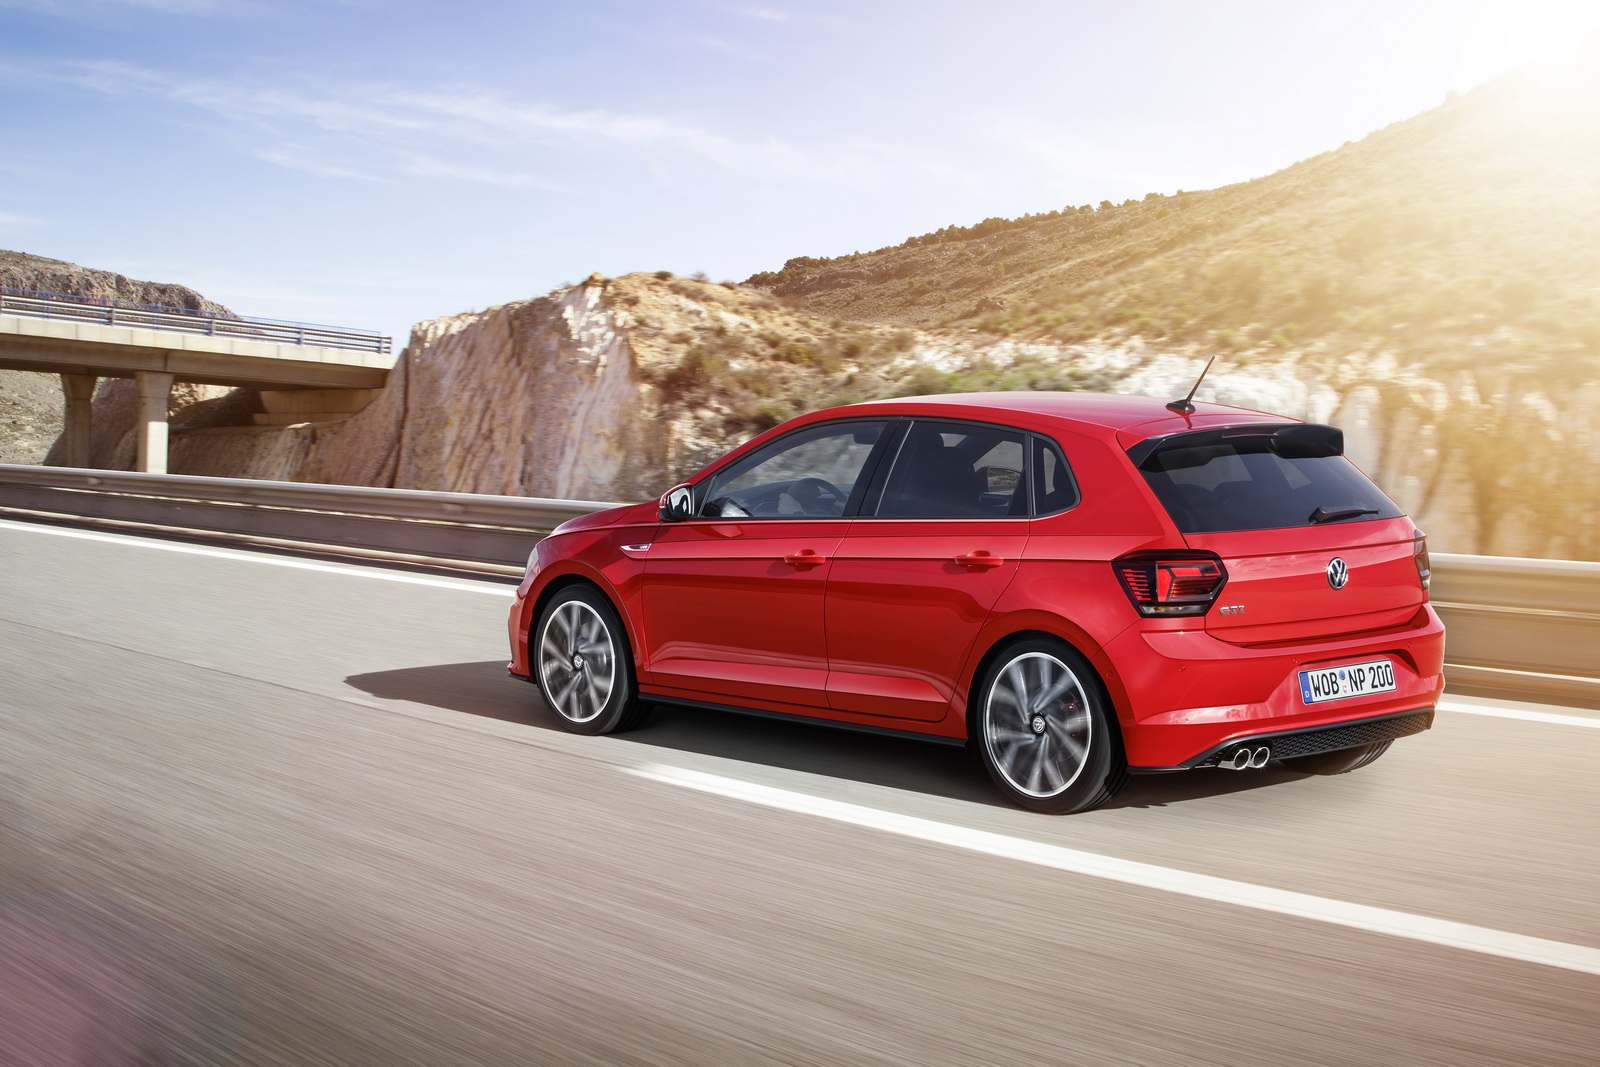 Volkswagen Polo and Polo GTI 2018 (49)